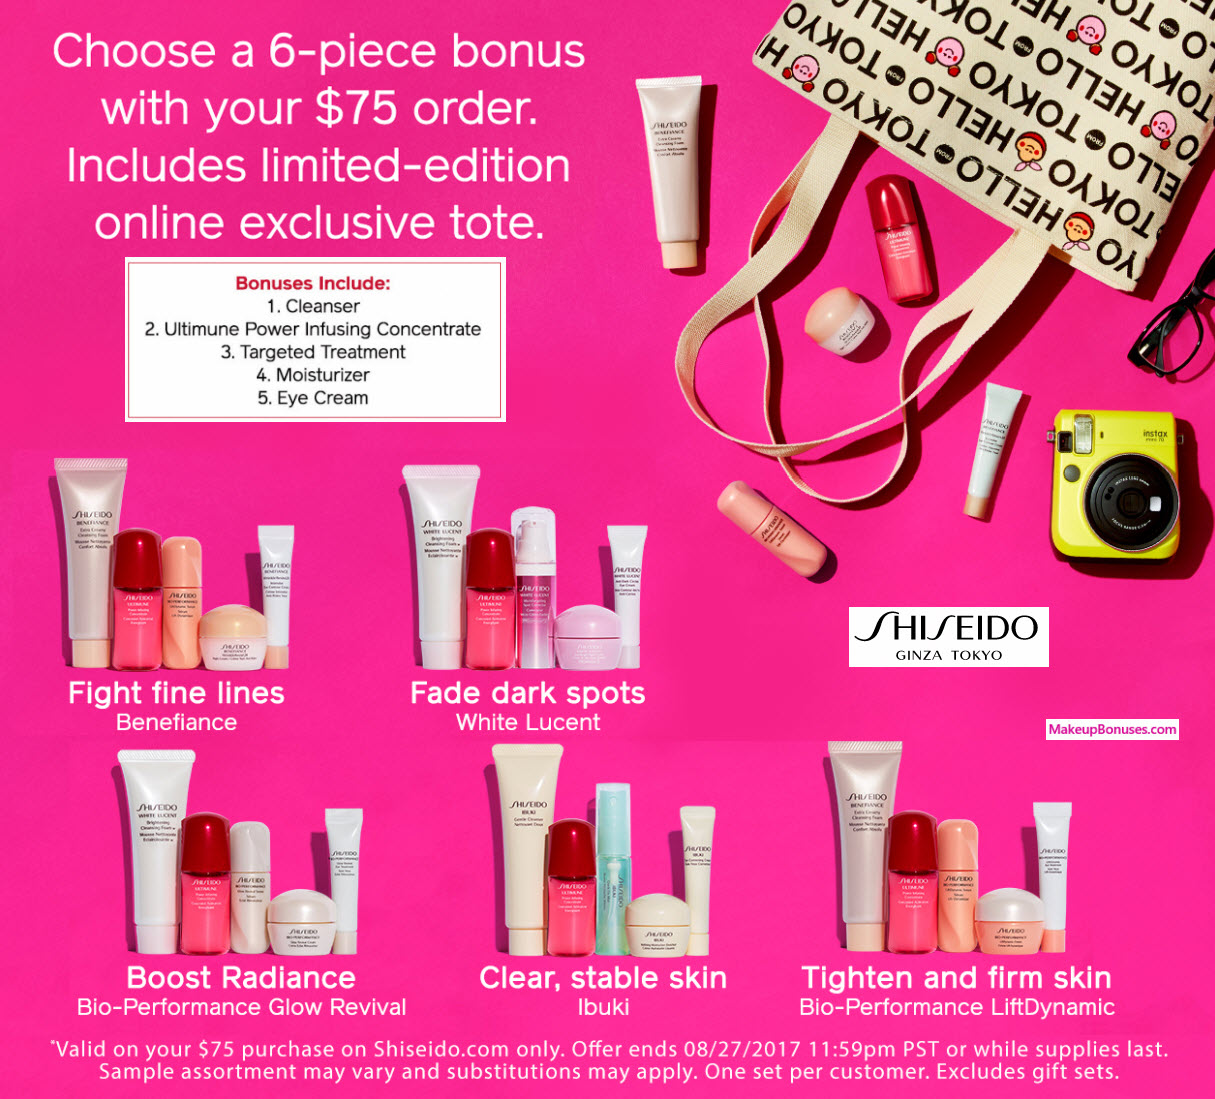 Receive your choice of 6-pc gift with your $75 Shiseido purchase